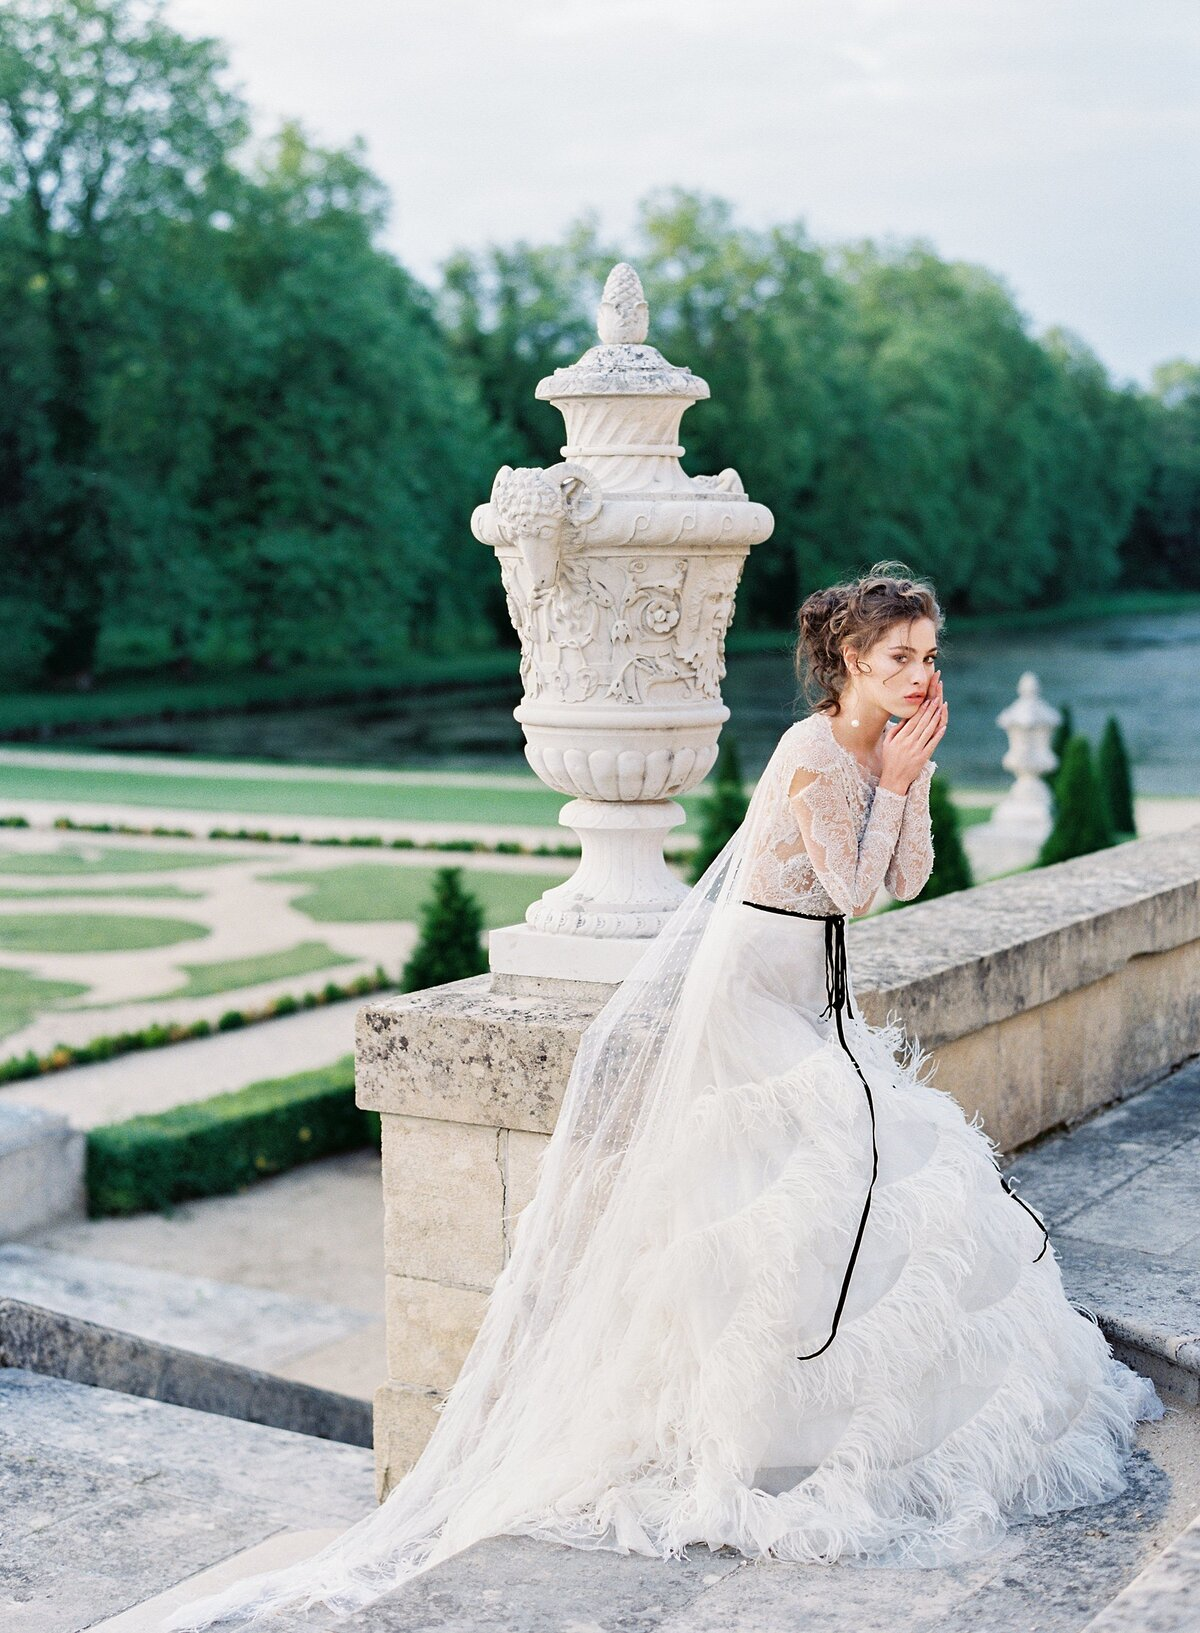 NKT-Events_Wedding-Inspiration-Editorial_Chateau-de-Villette-Bridal_0209